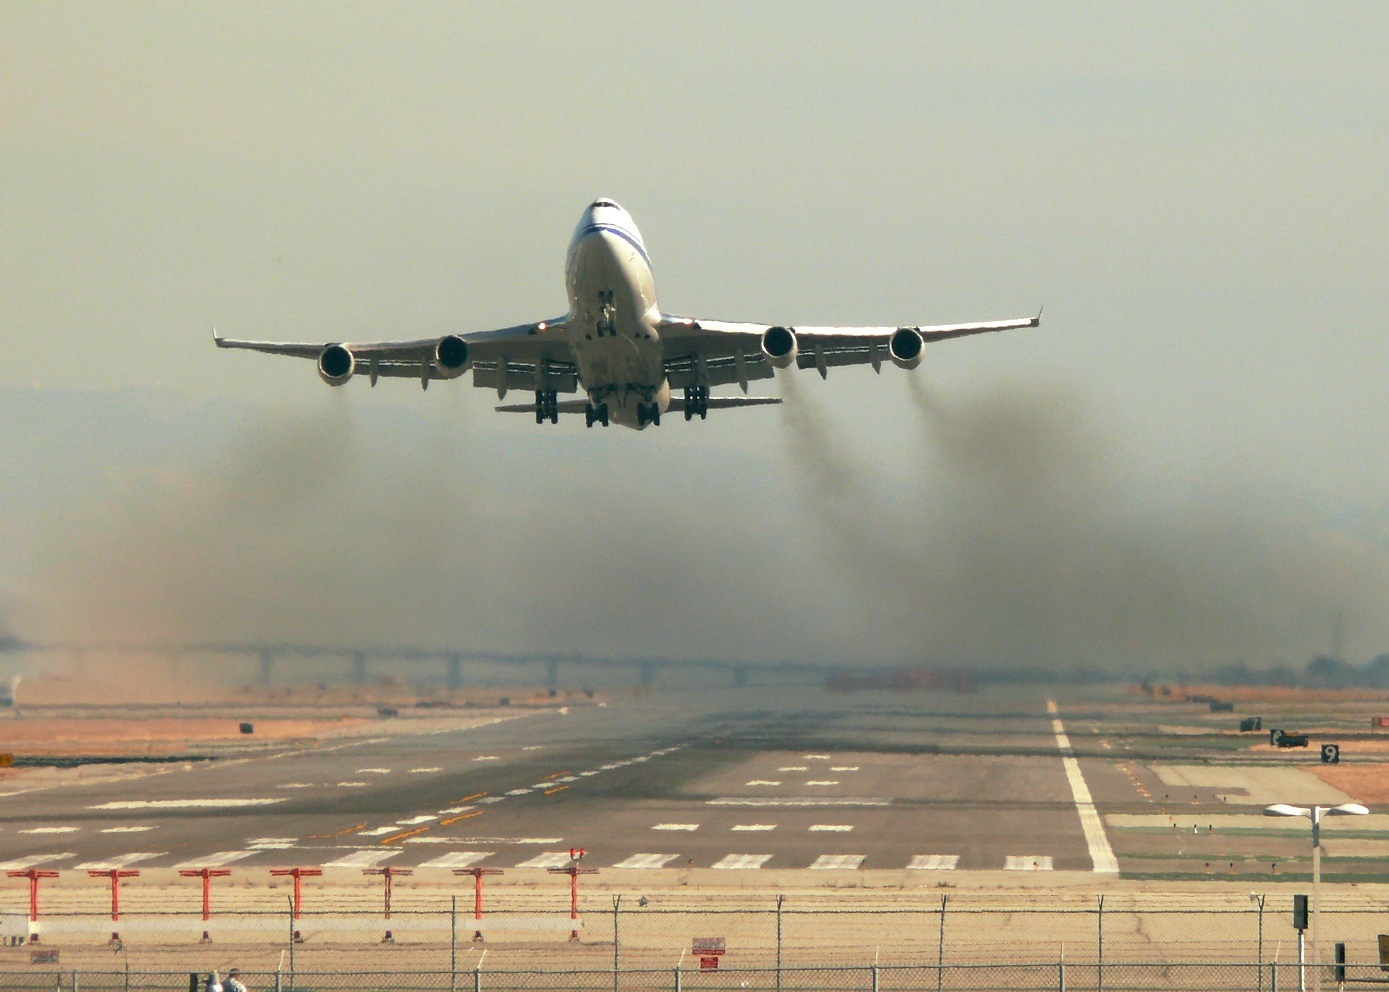 Airplane taking off runway